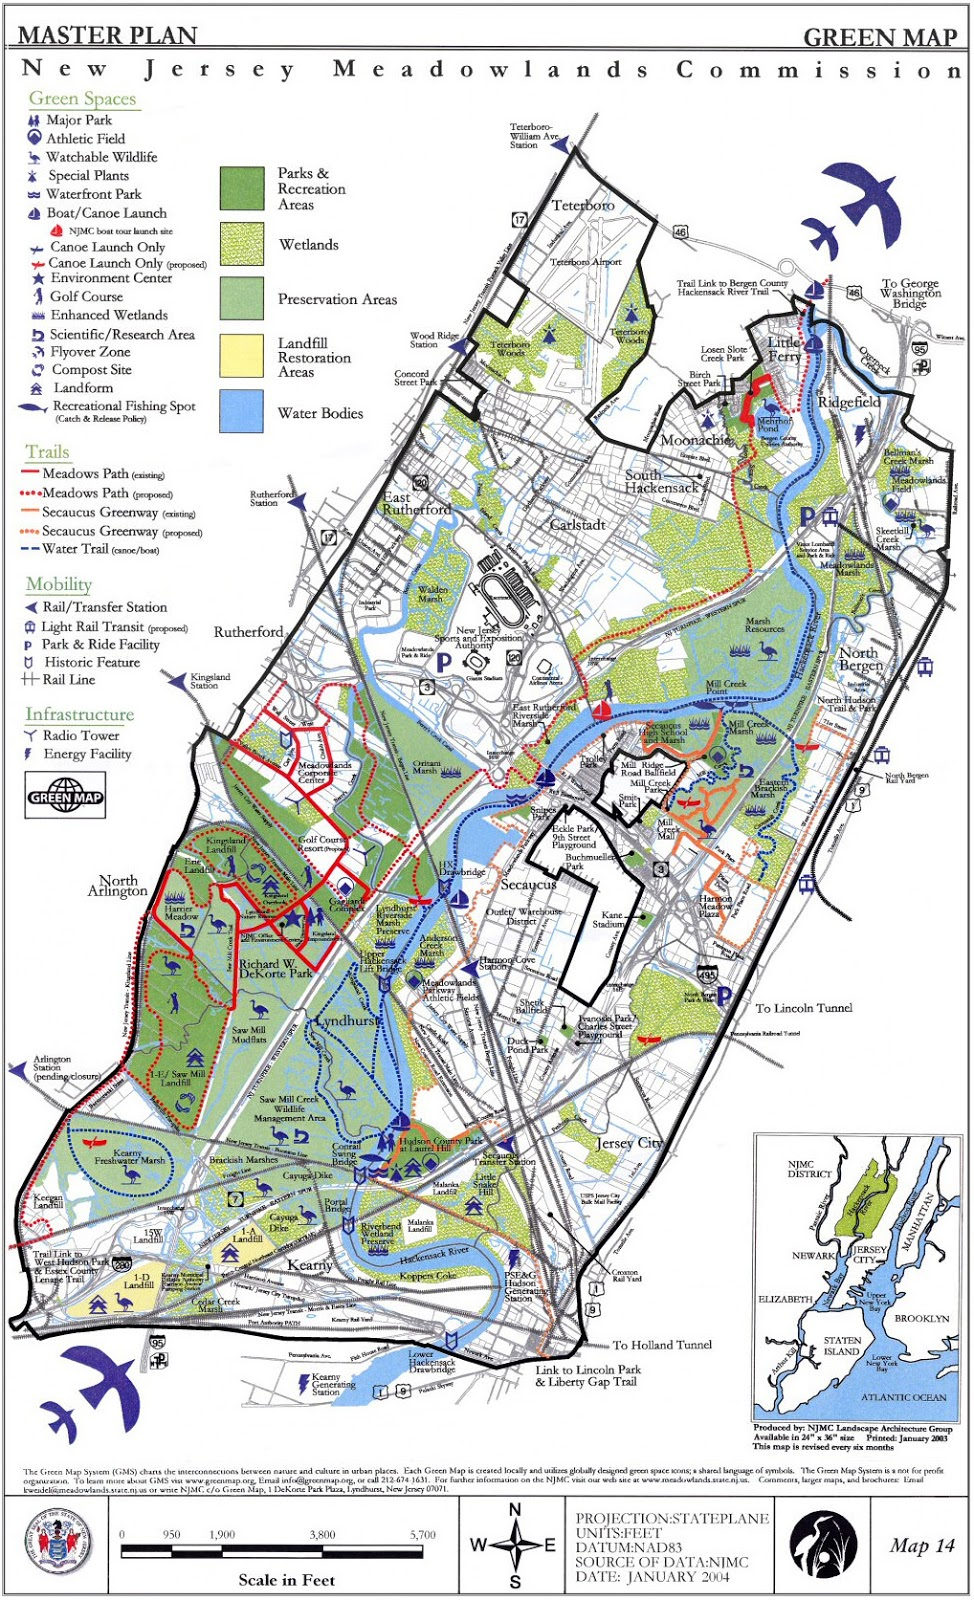 The Hackensack Meadowlands In The Imagery History Of A Deep - Us wildlife map of the 1400s